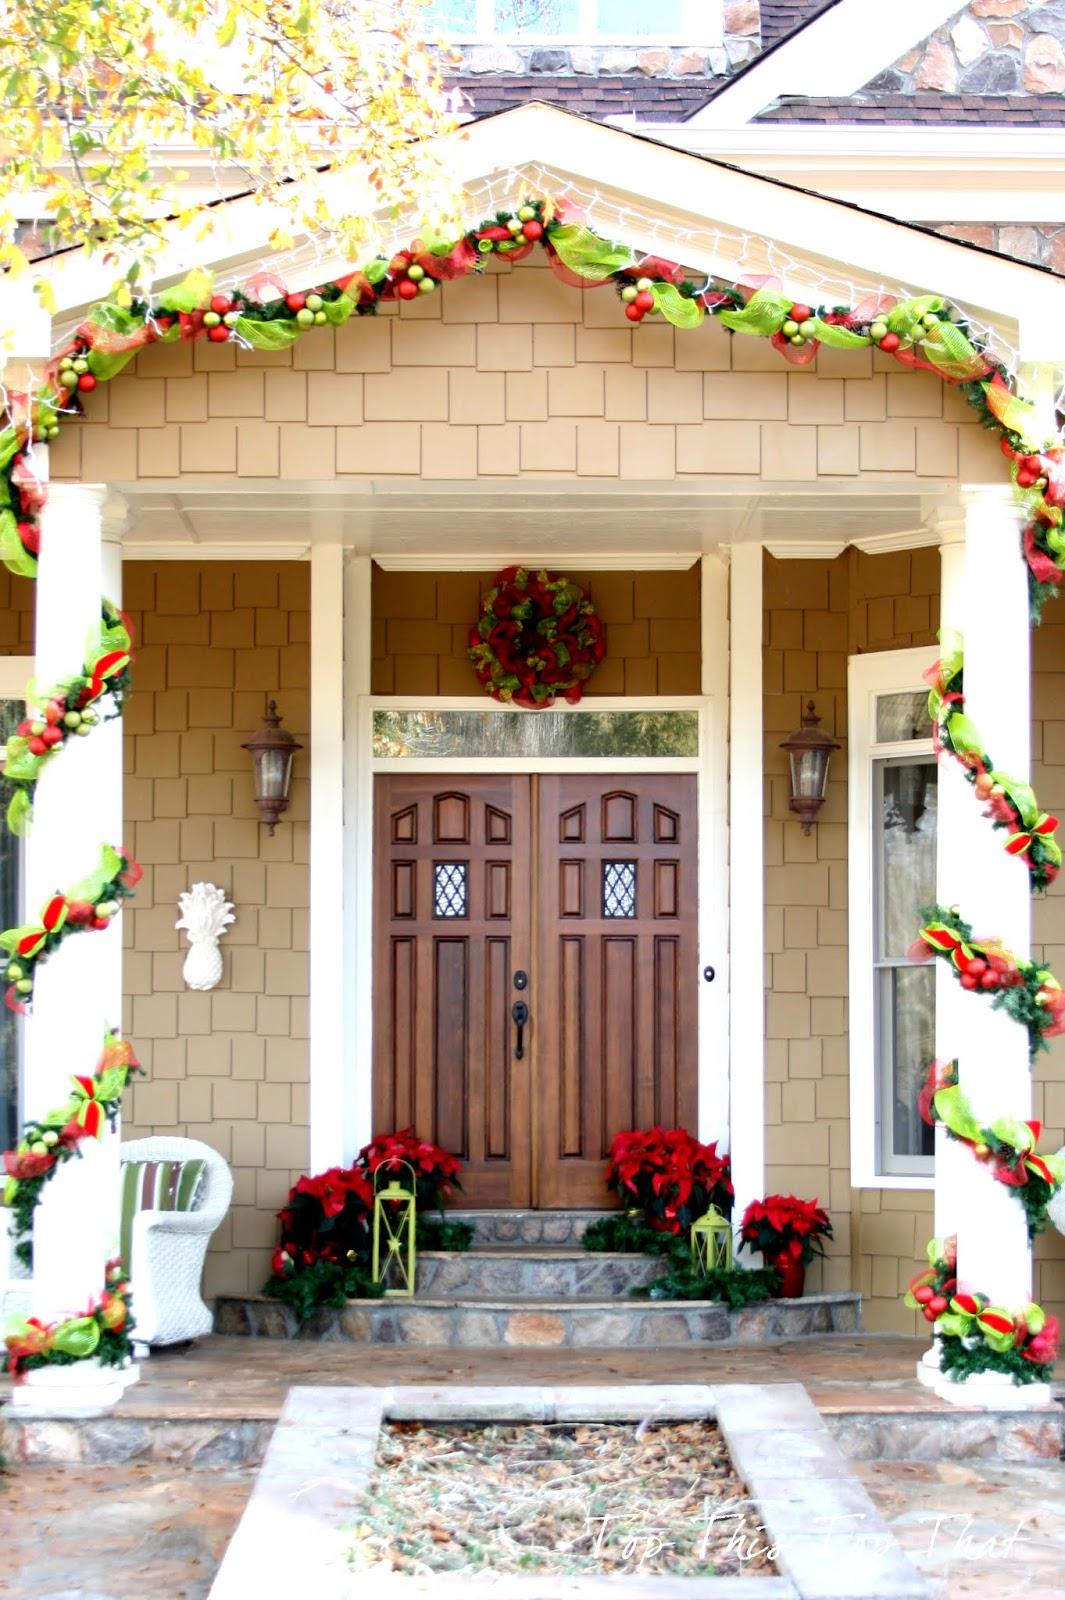 christmas decor outside the house - Front Door Entrance Christmas Decoration